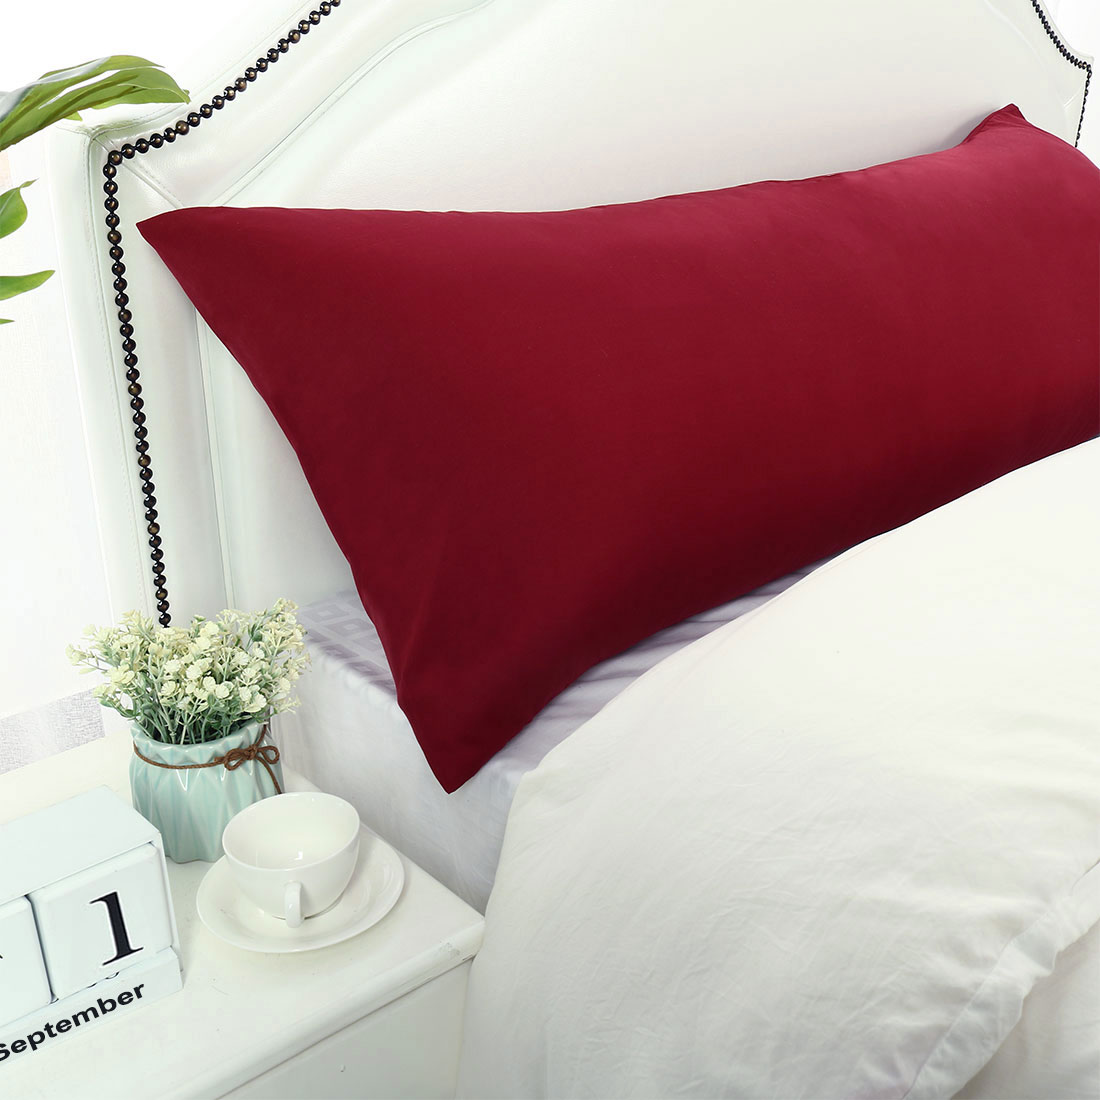 """Body Pillow Cases 1800 Microfiber Soft Bolster Pillow Covers Wine 20x60"""""""